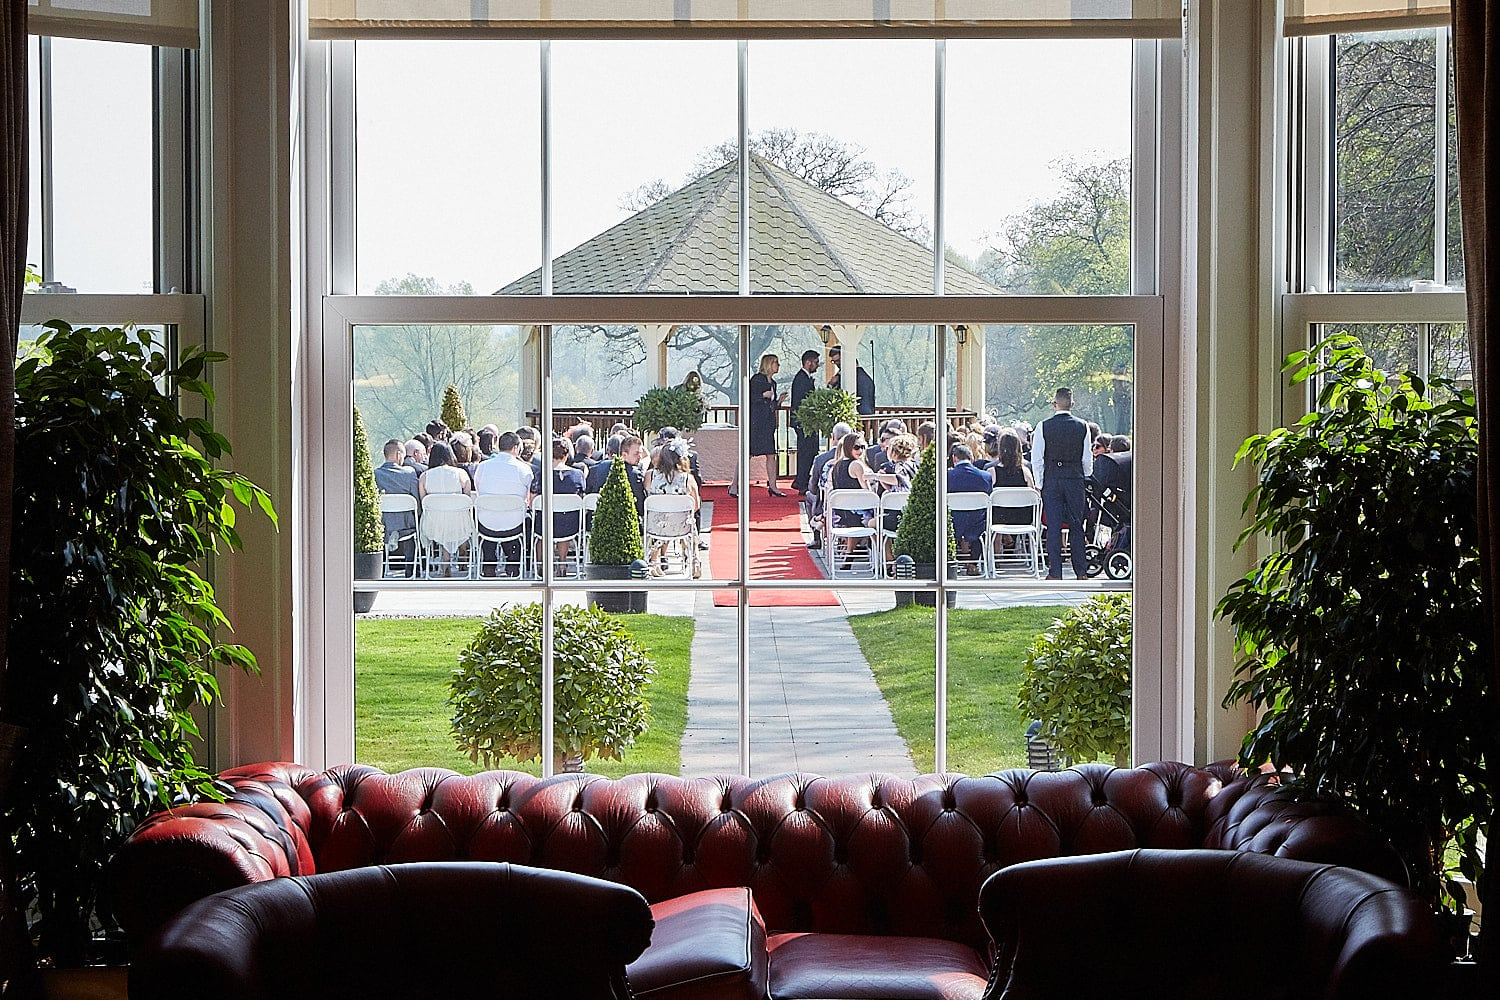 Viewing the outdoor wedding ceremony space at Kenwick Park